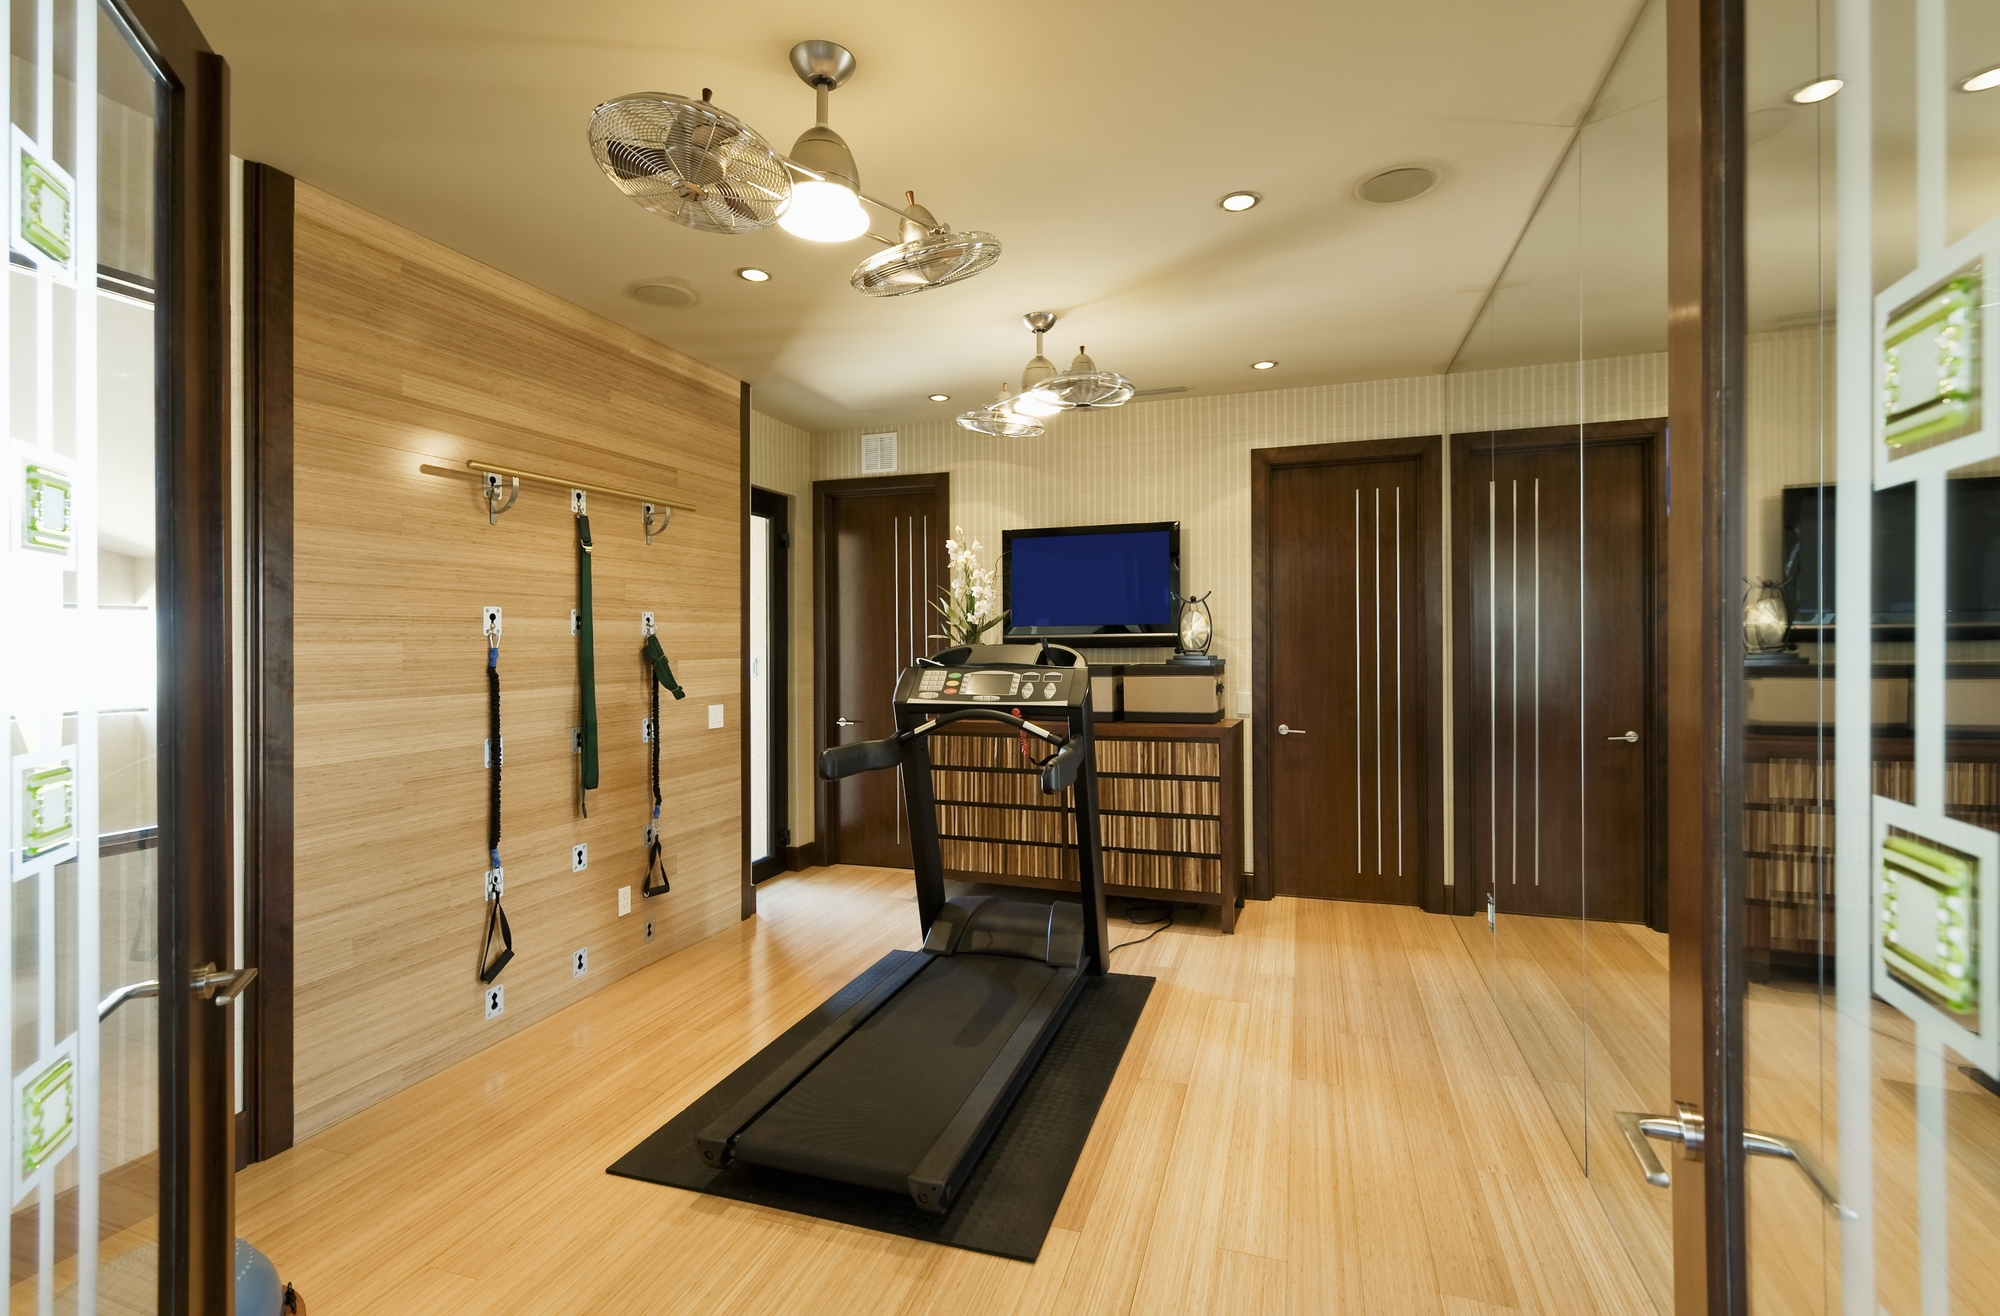 Snug Harbor A Huge Mirror, Soft Gray Walls, Soft Gray Carpet, And Recessed  Lighting Create A Cozy Place To Get In Shape, While A Mounted TV And Modern  ...